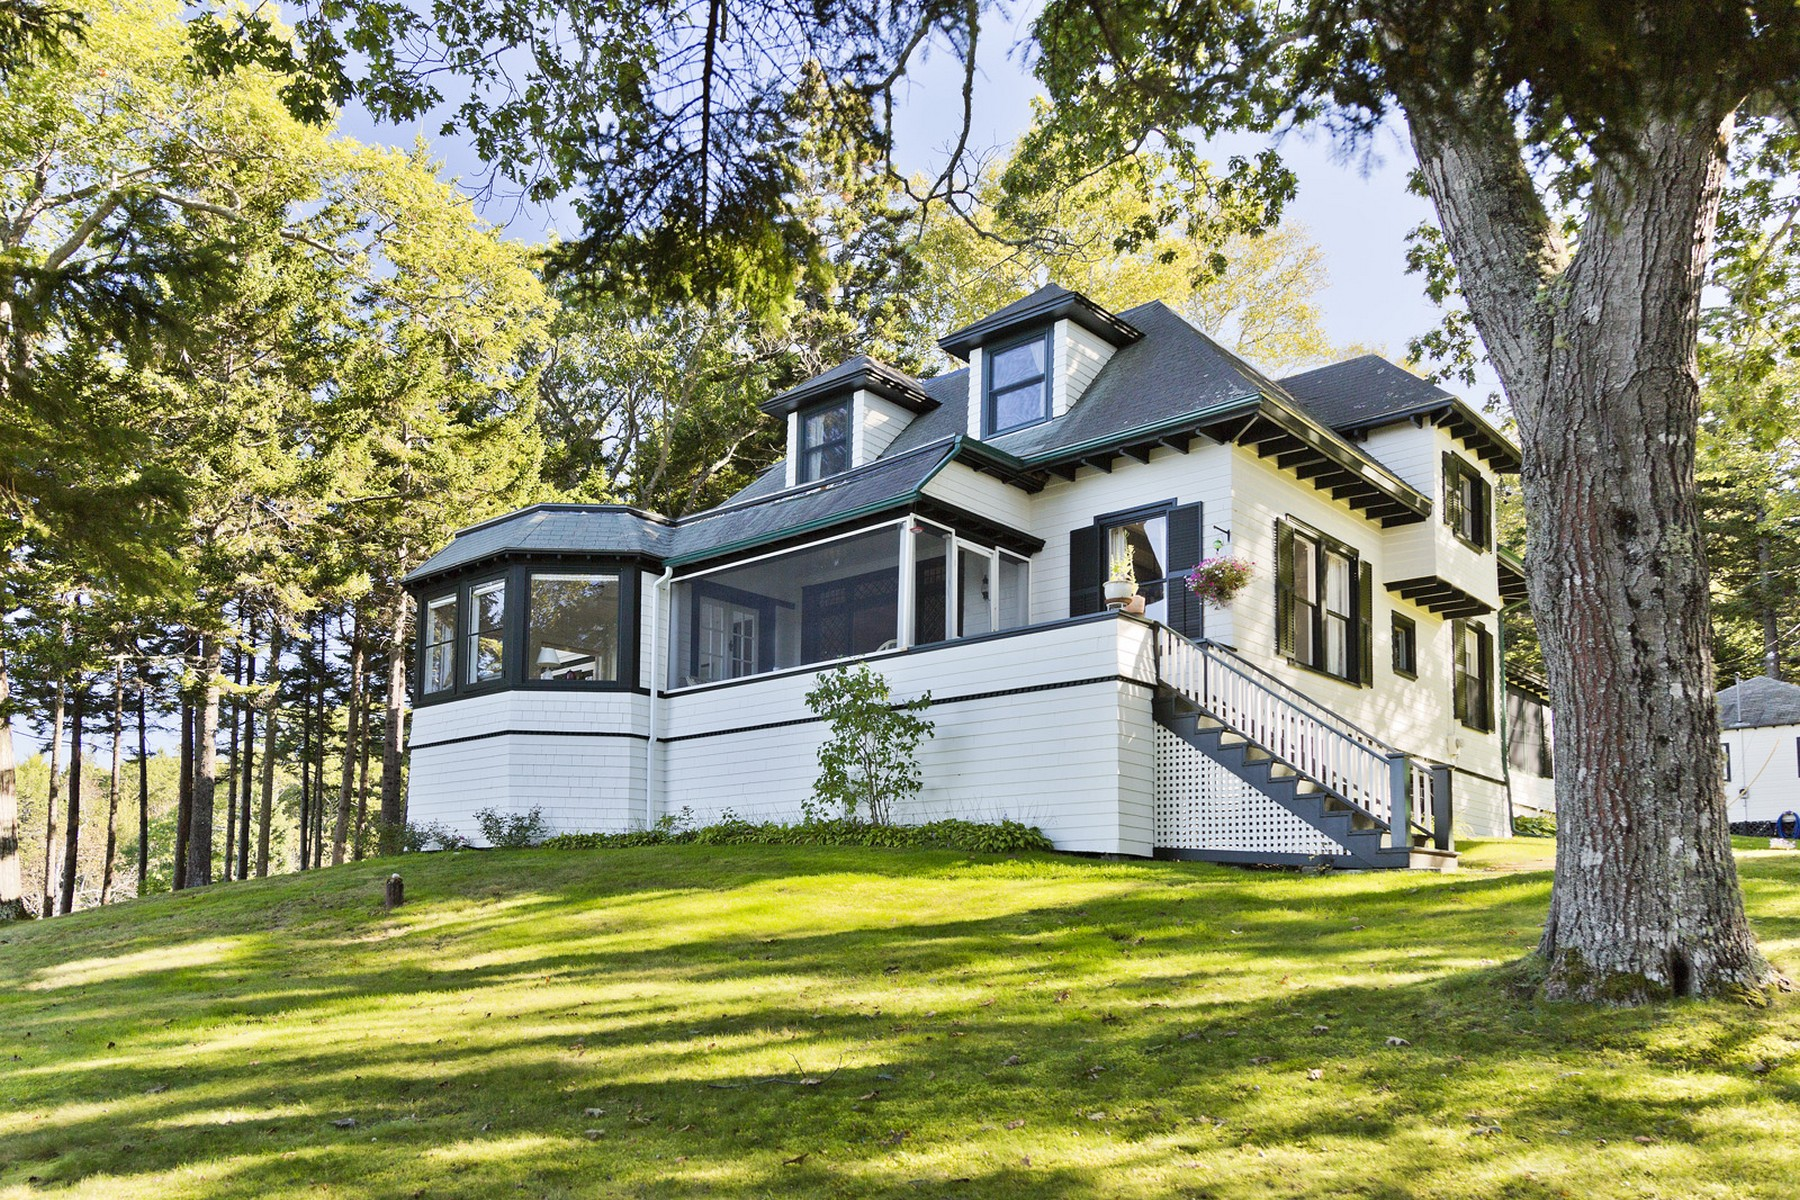 Single Family Home for Sale at Kro Krest 17 Kro Krest Lane Sorrento, Maine 04677 United States